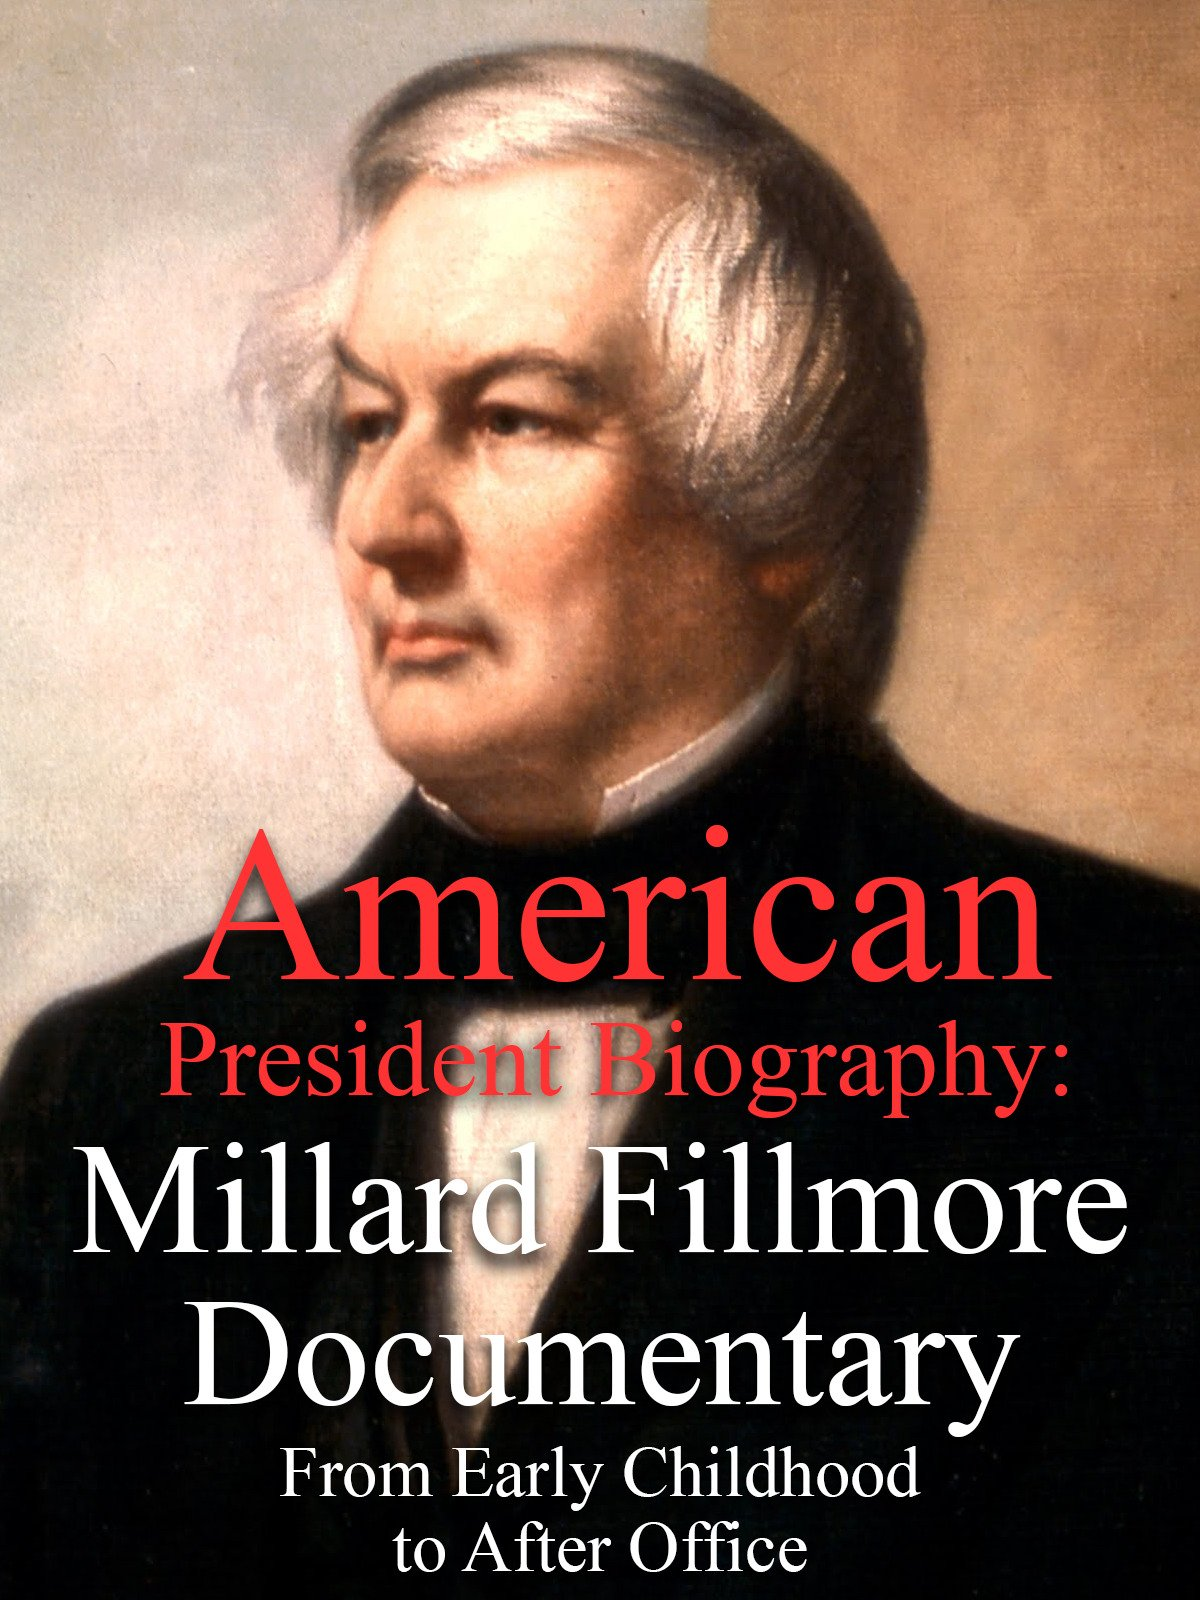 American President Biography: Millard Fillmore Documentary From Early Childhood to After Office